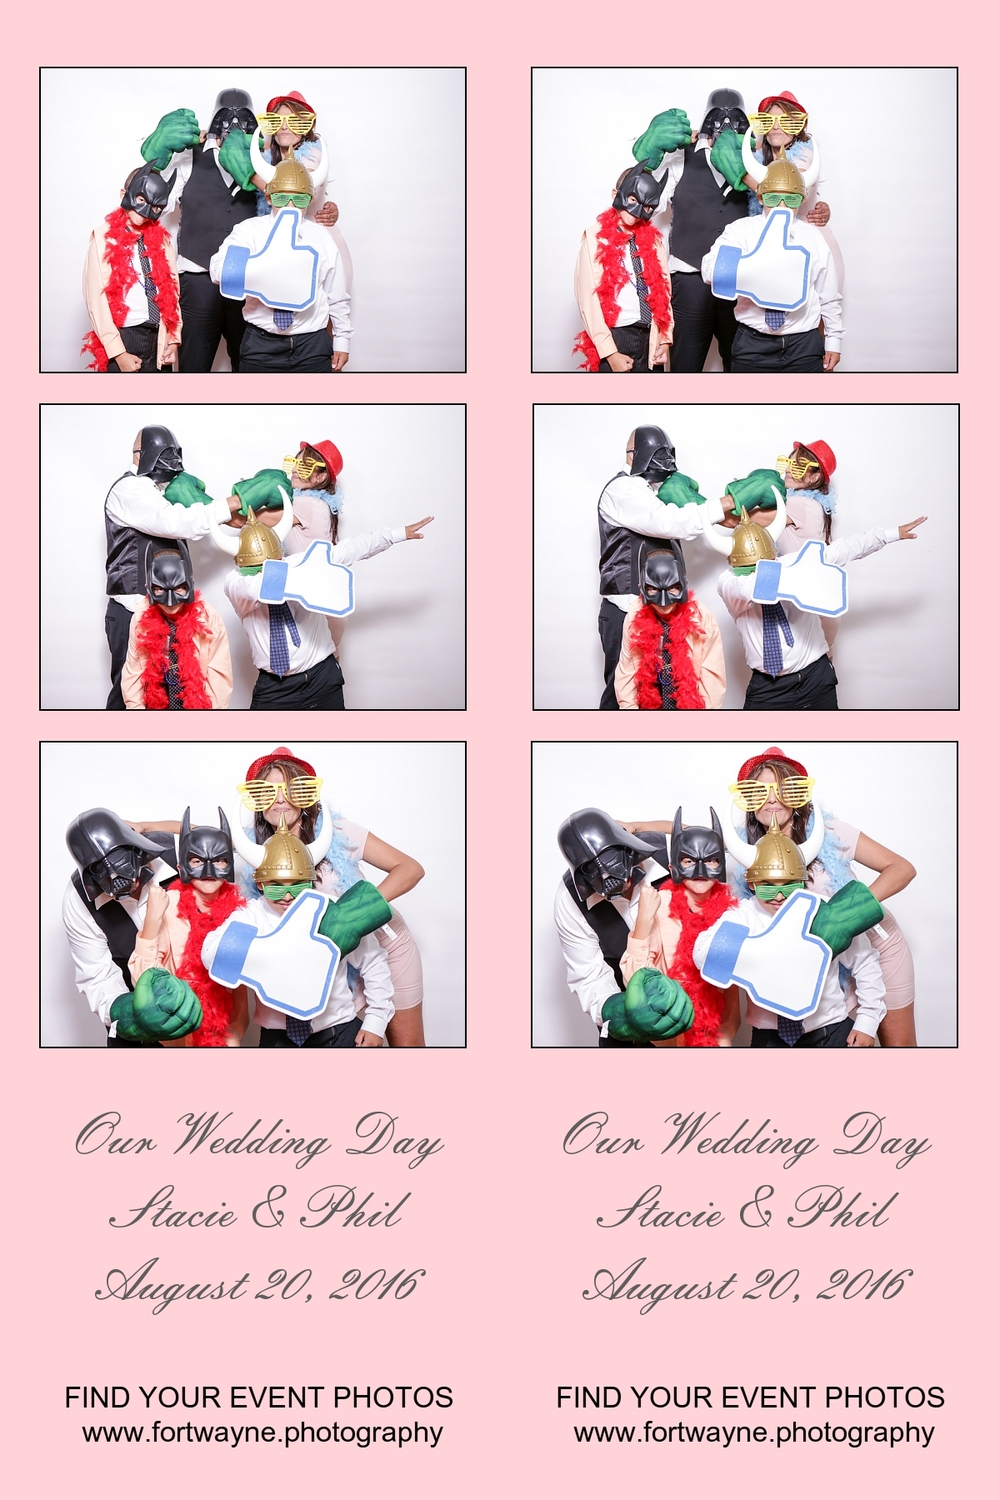 photobooth-photo-booth-rental-fort-wayne-indiana-bluffton-auburn-huntington-1078.jpg